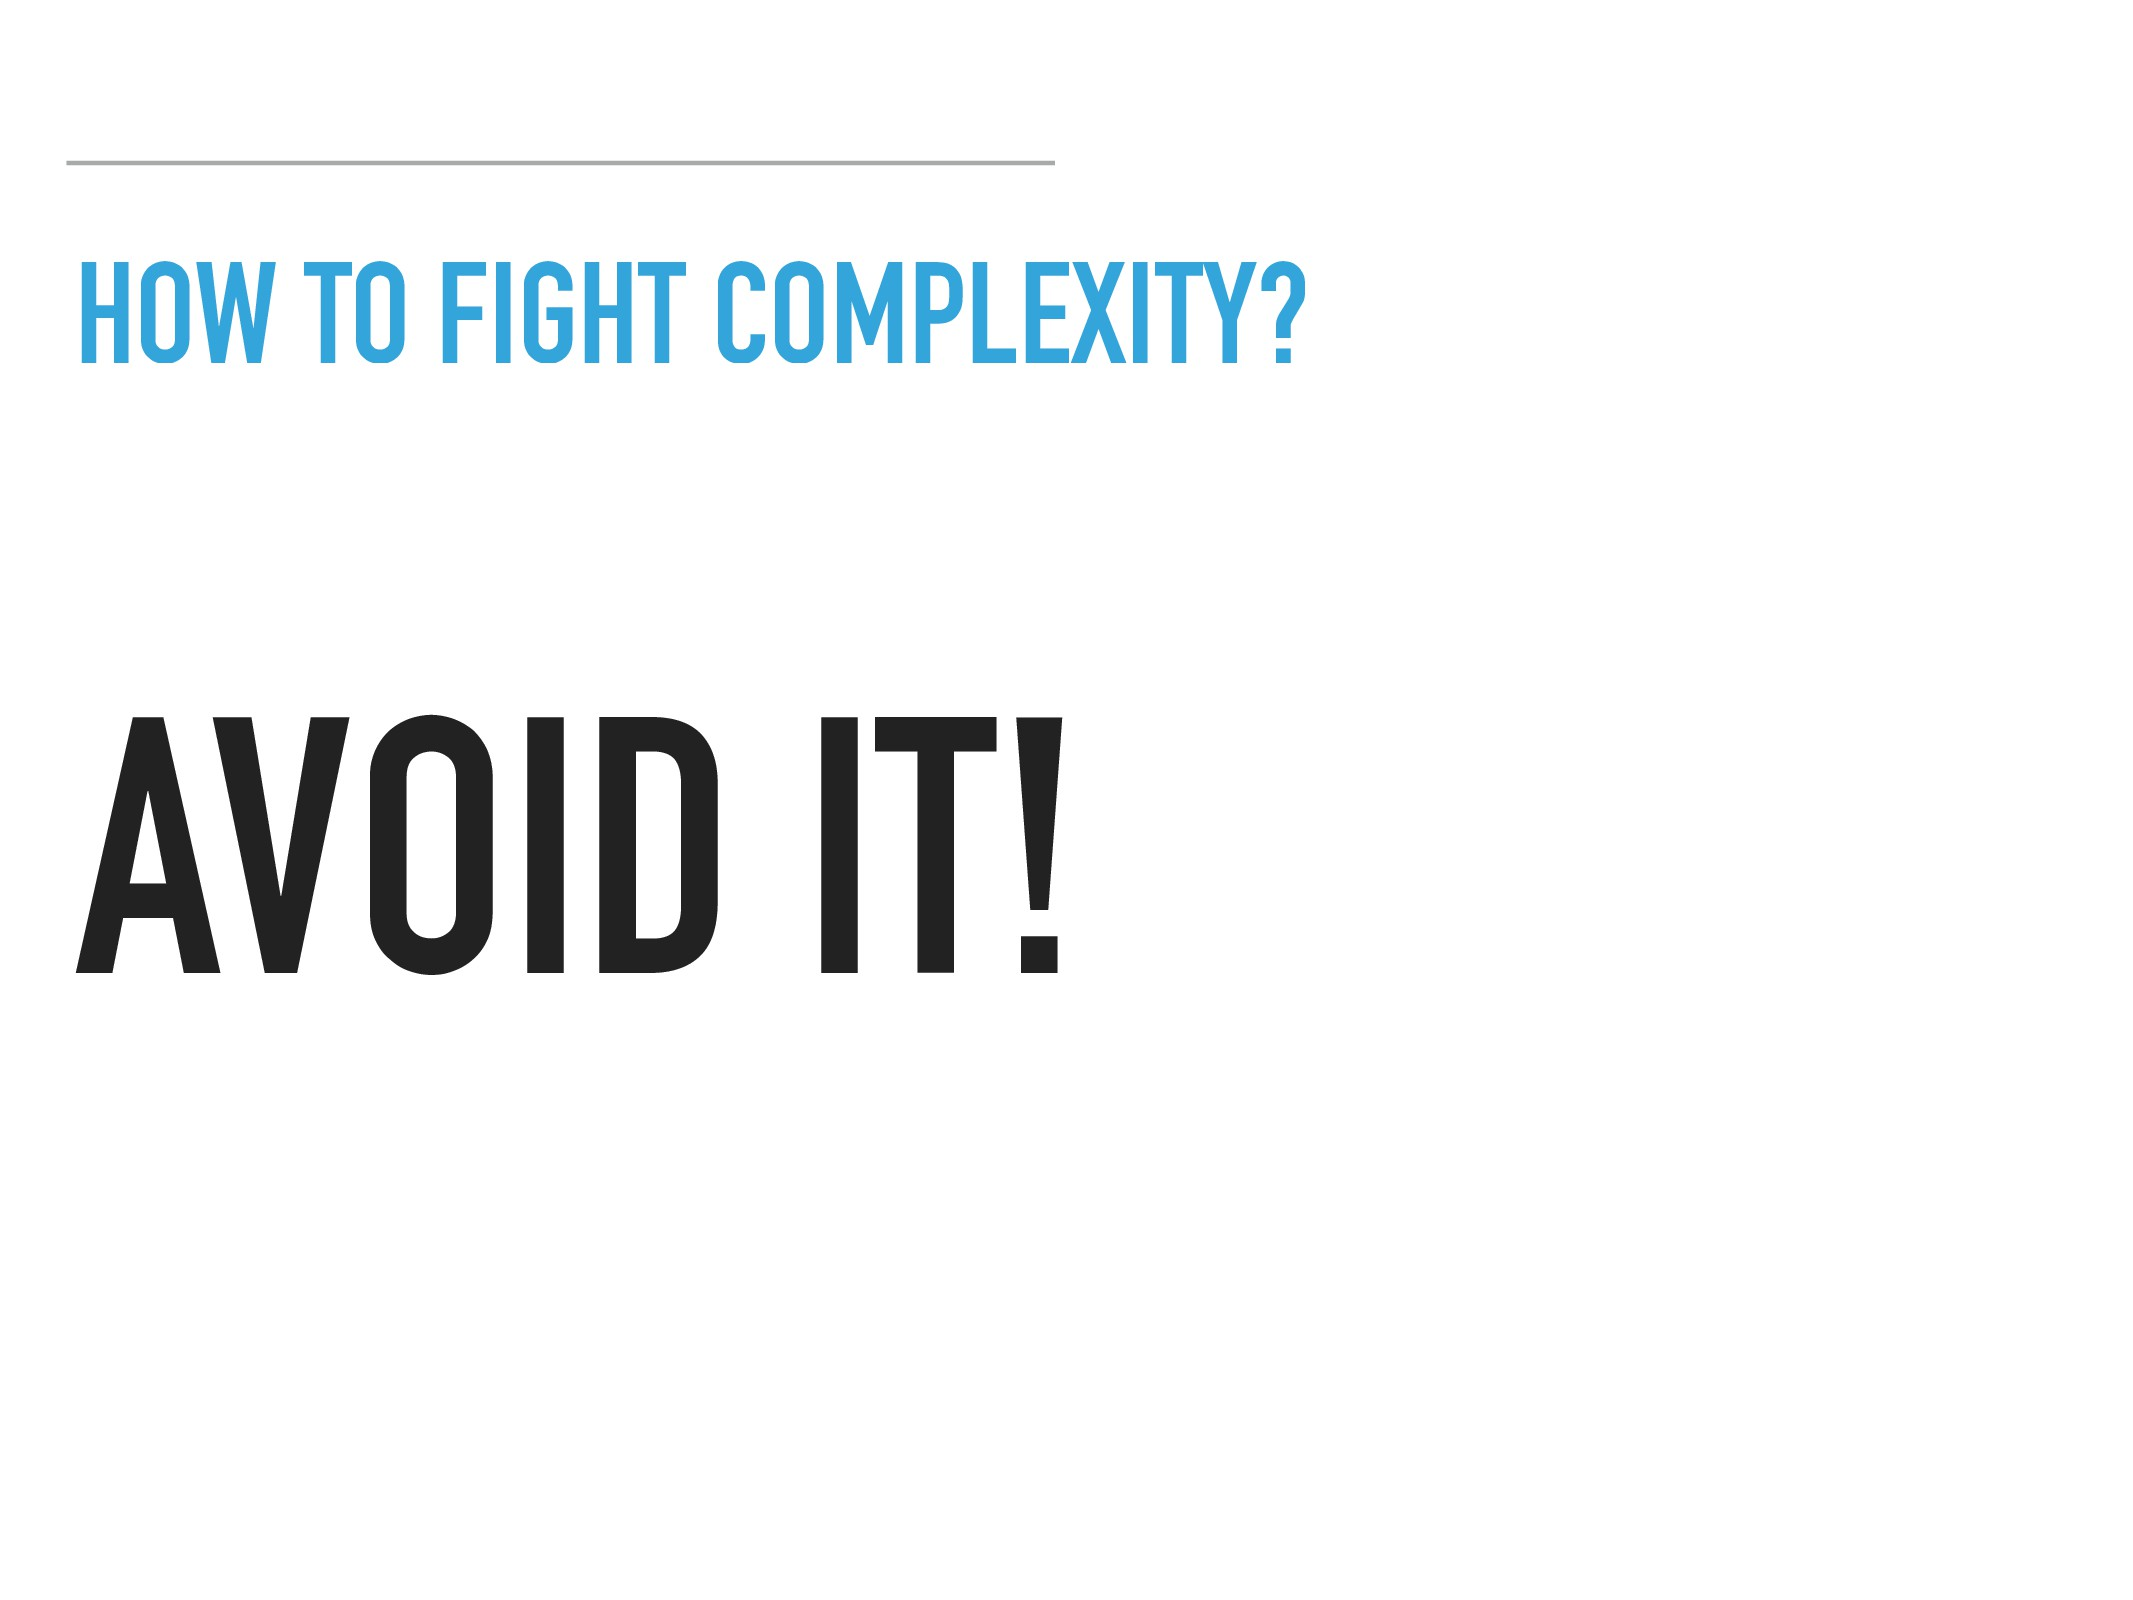 HOW TO FIGHT COMPLEXITY? AVOID IT!